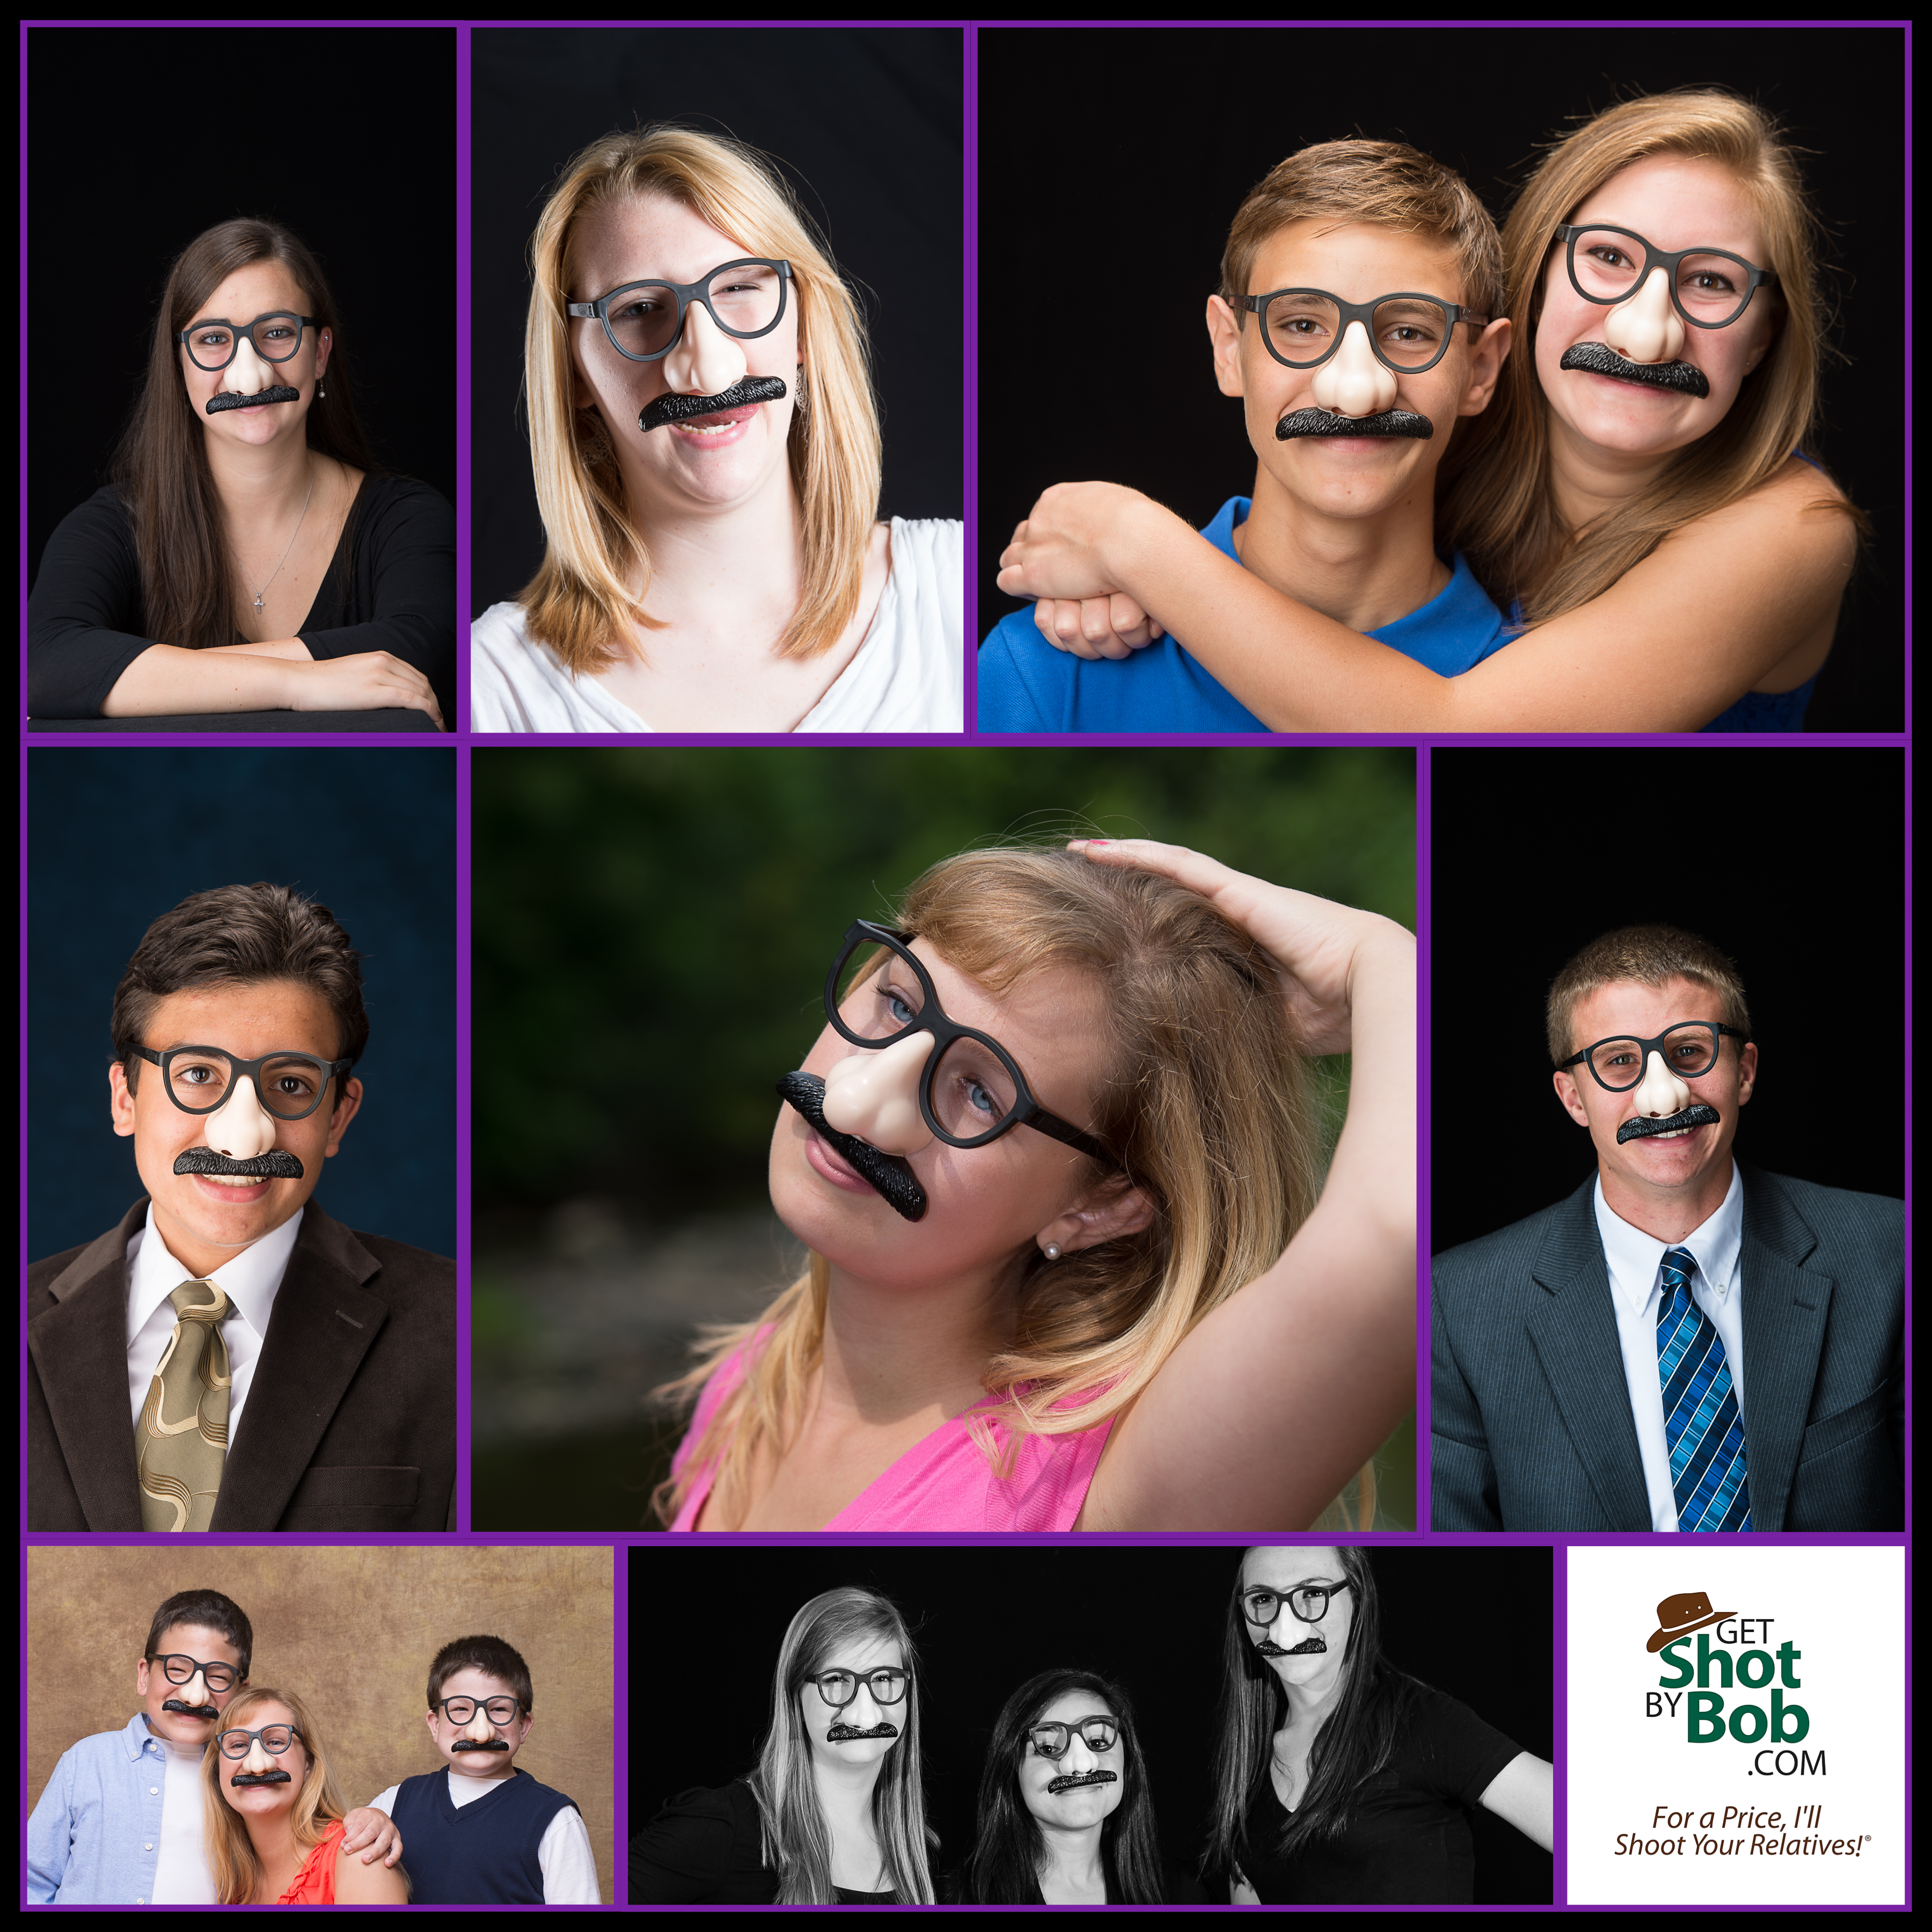 Michigan's Best Senior Photographer knows how to have fun